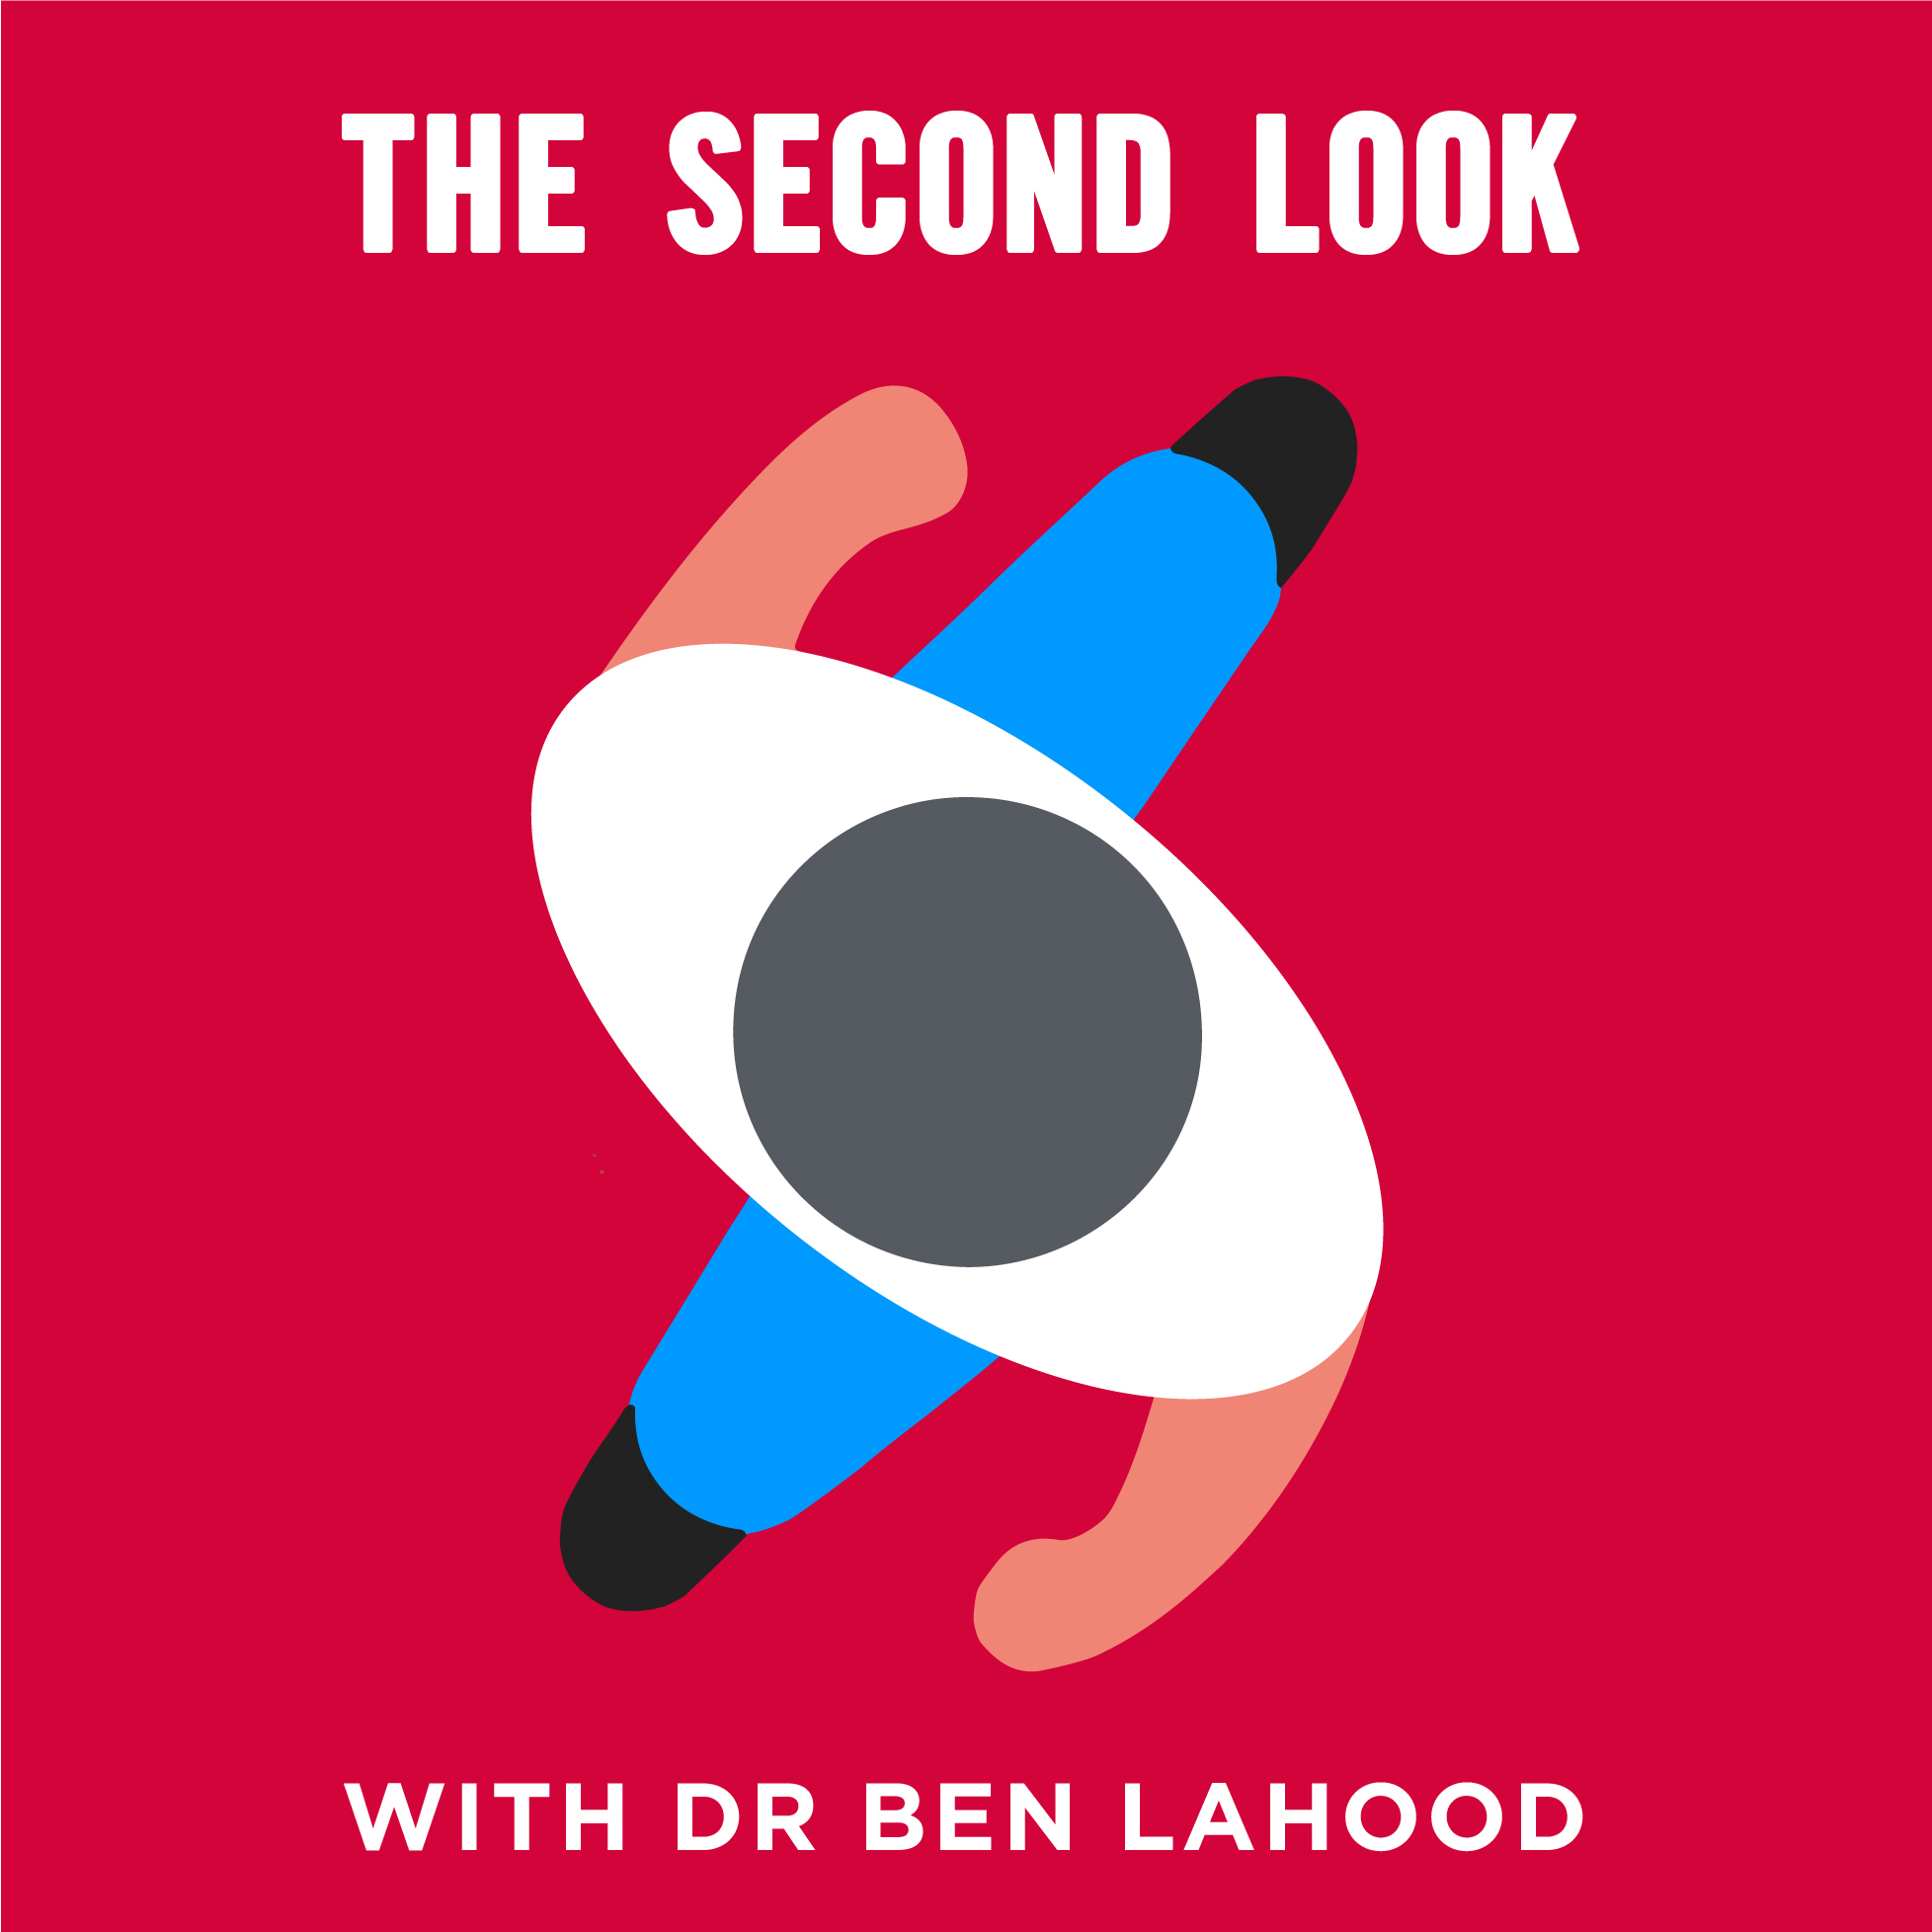 The Second Look with John Berdahl